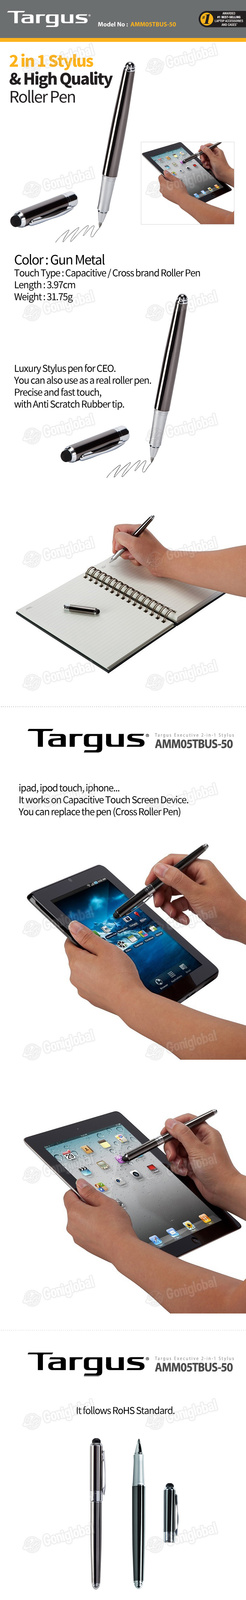 Targus Targus 2 in 1 Stylus Roller Pen AMM05TBUS / Executive 2-in-1 Stylus Pen /